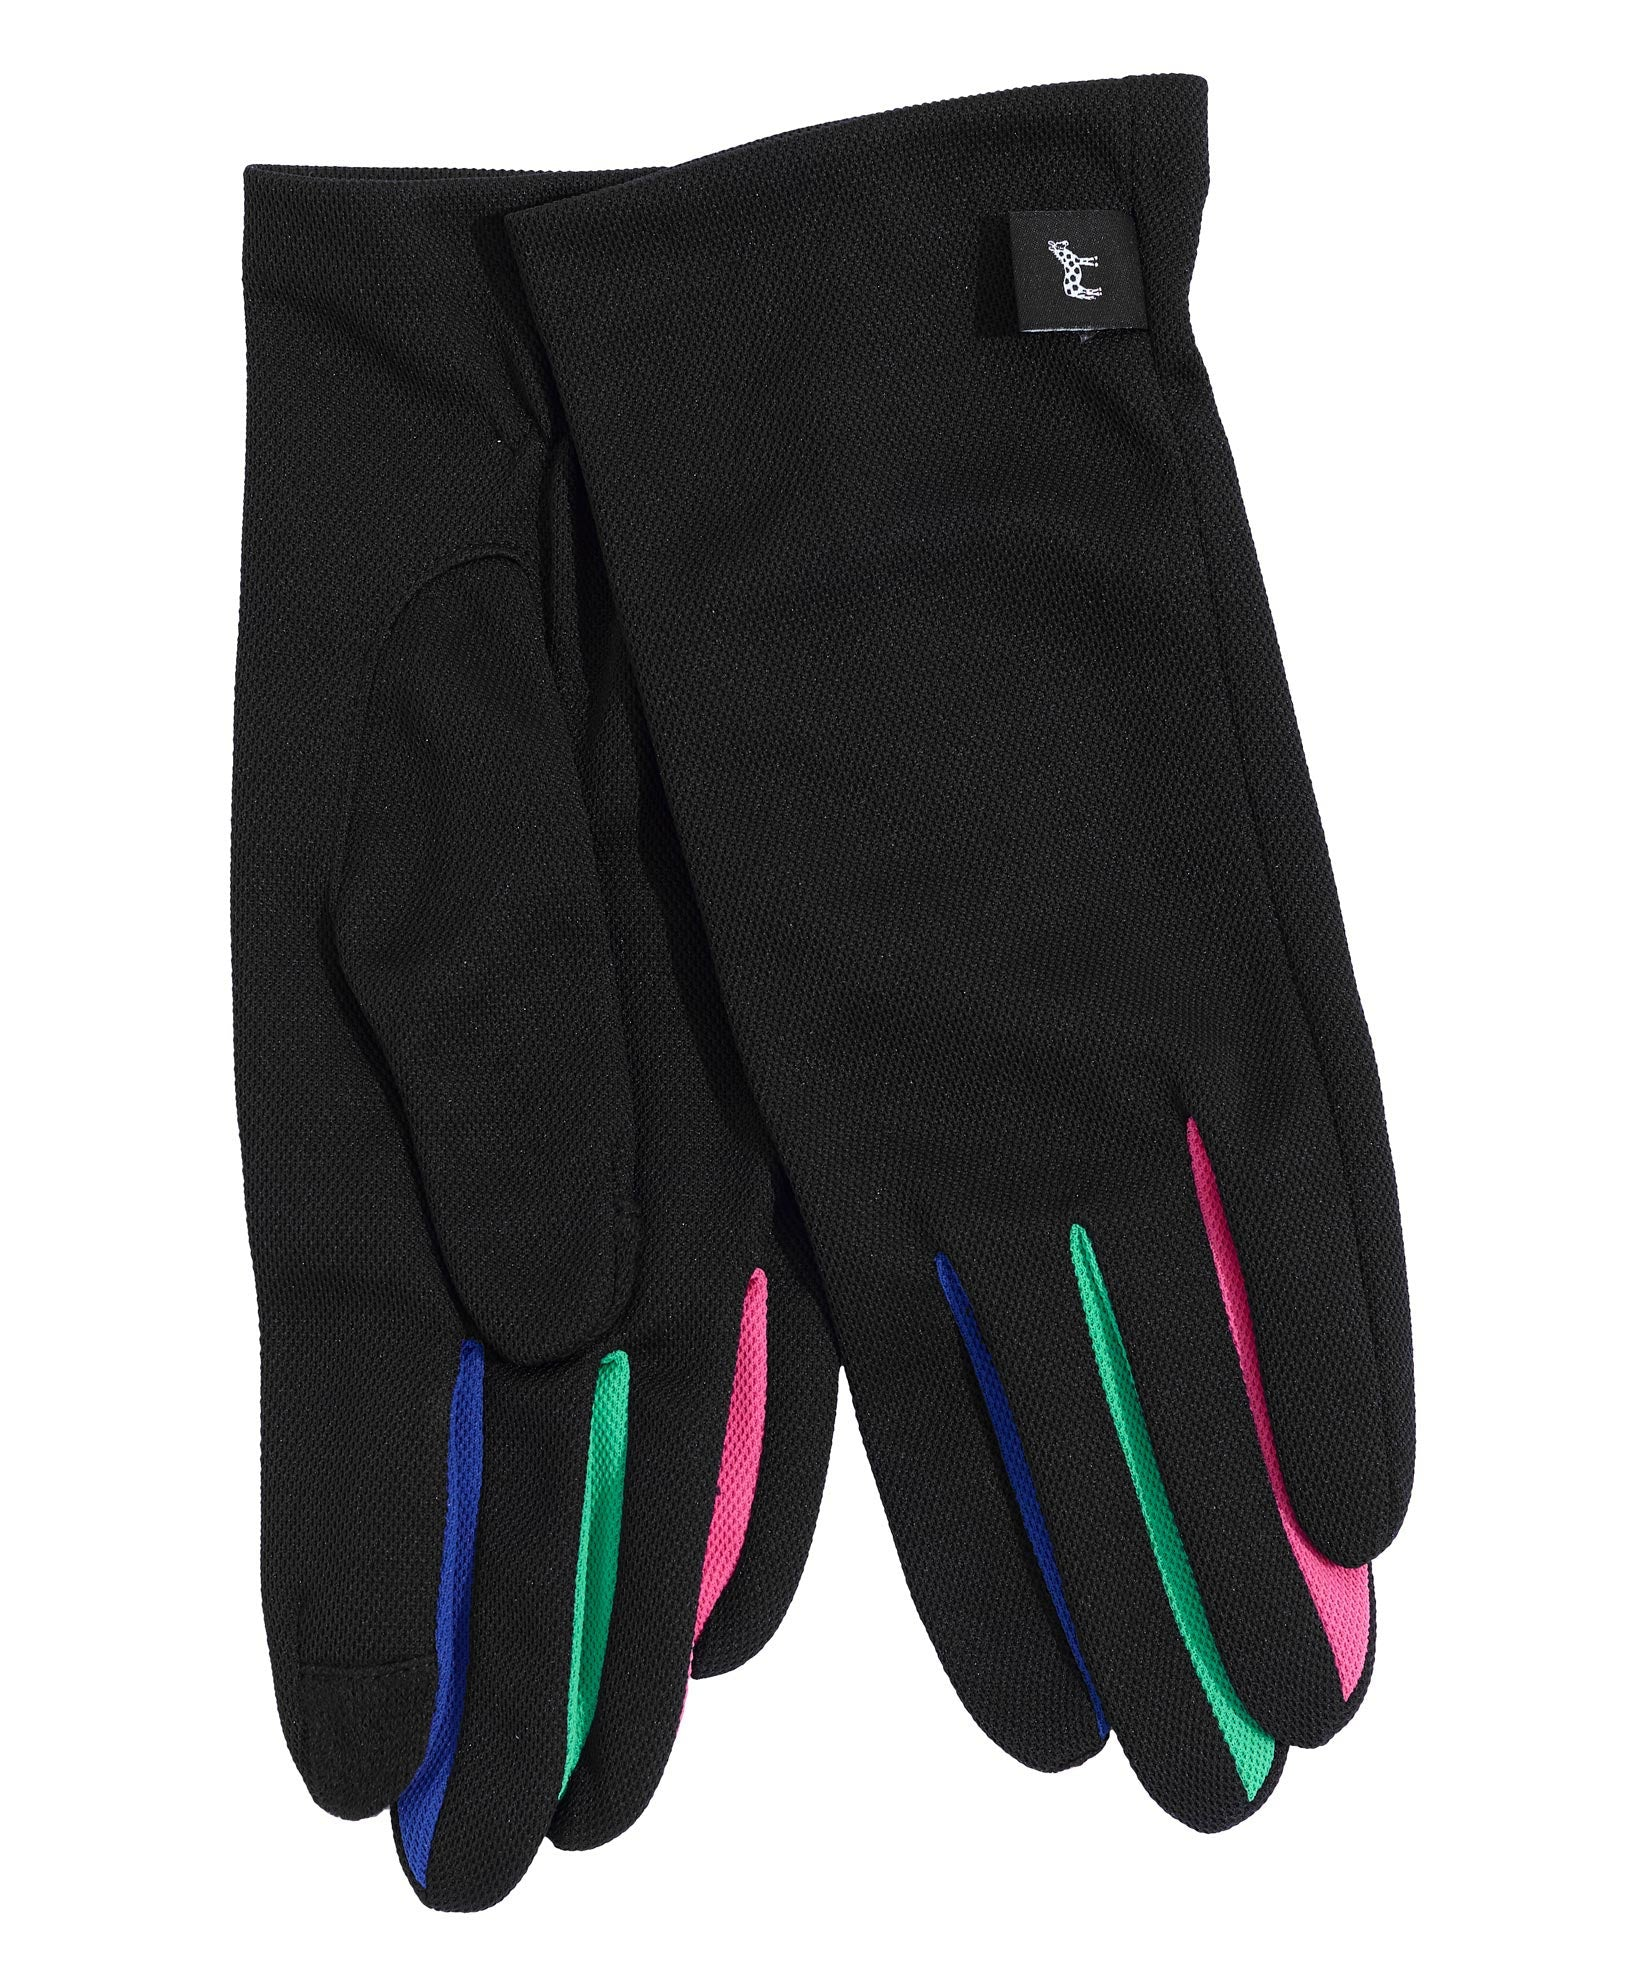 UPF50 Colorblock Washable Errand Glove with Echo Touch® - UPF50 Colorblock Washable Errand Glove with Echo Touch®